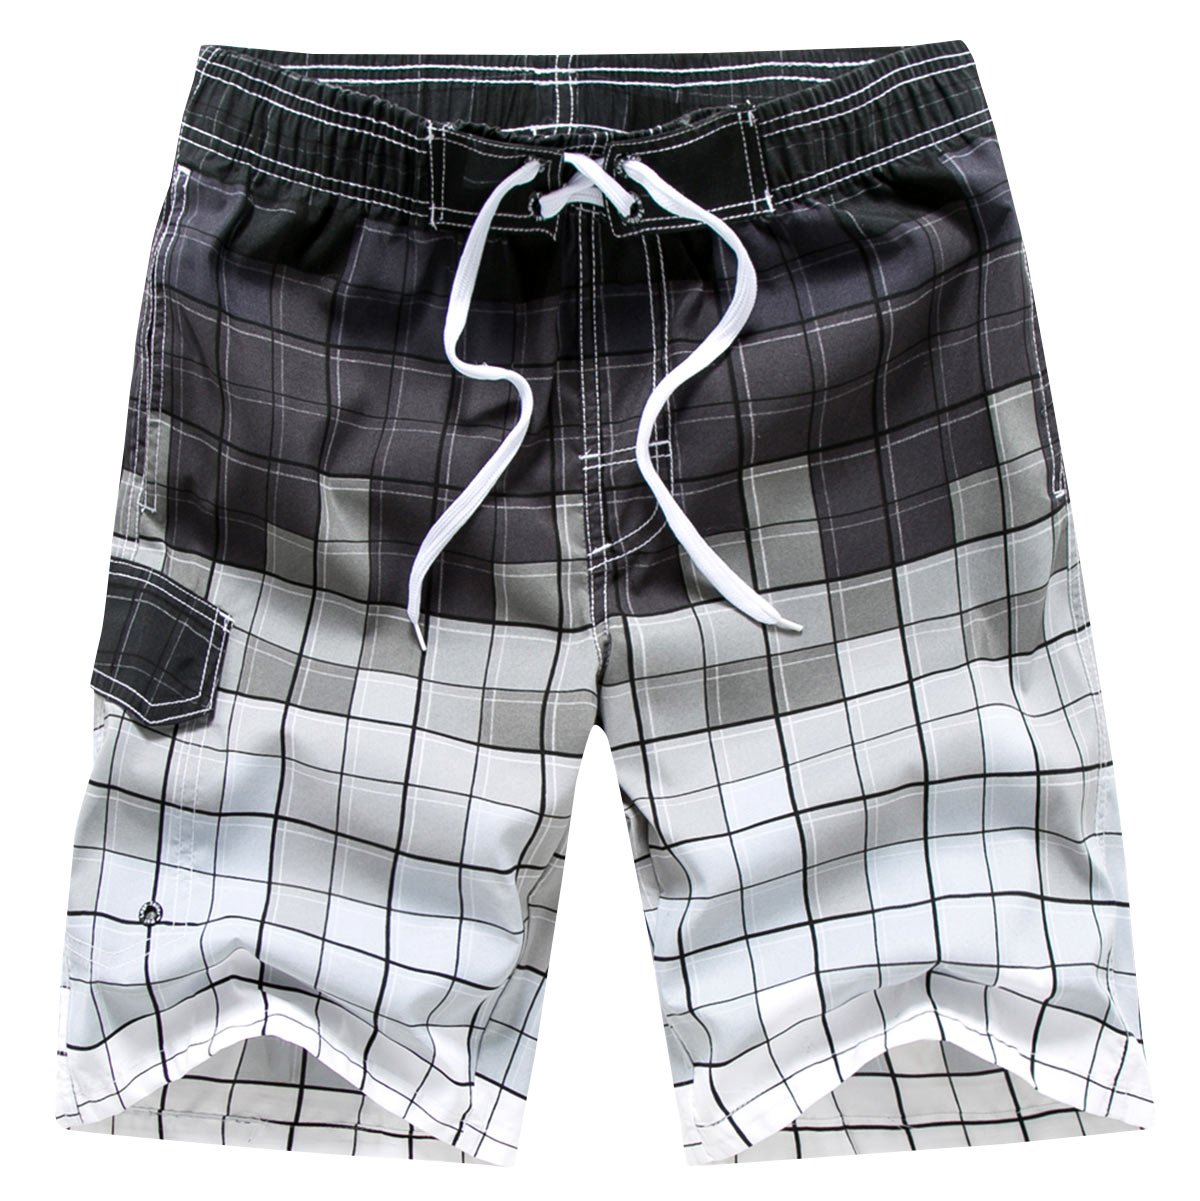 Plus Size Bathing Trunks for Men Plaid Printing Quick-Drying Cargo Water Shorts Fashion Breathable Bathing Suits with Pockets, Gray Size XXL